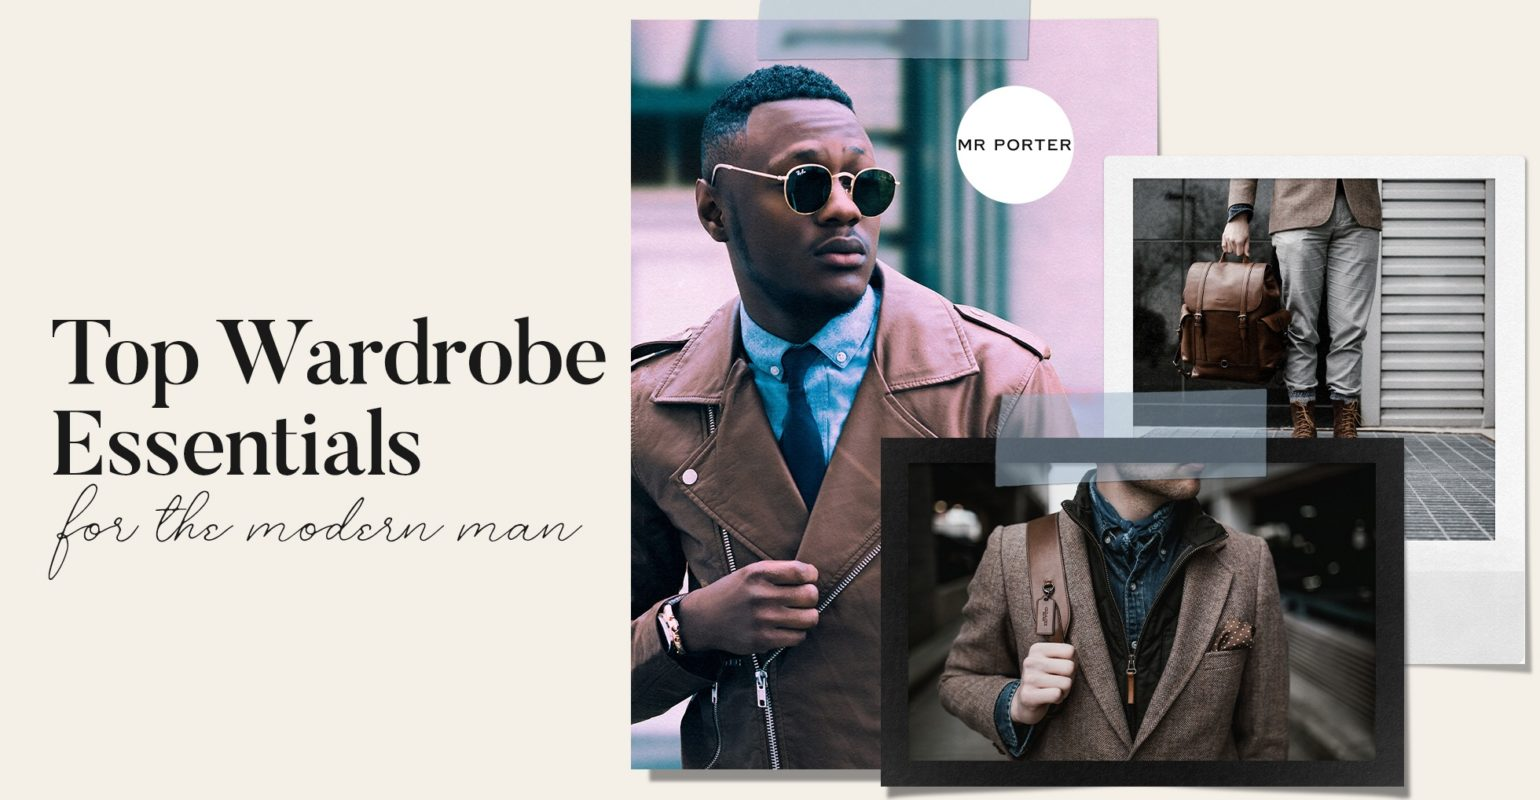 Mr. Porter Offers Top Wardrobe Essentials for the Modern Man